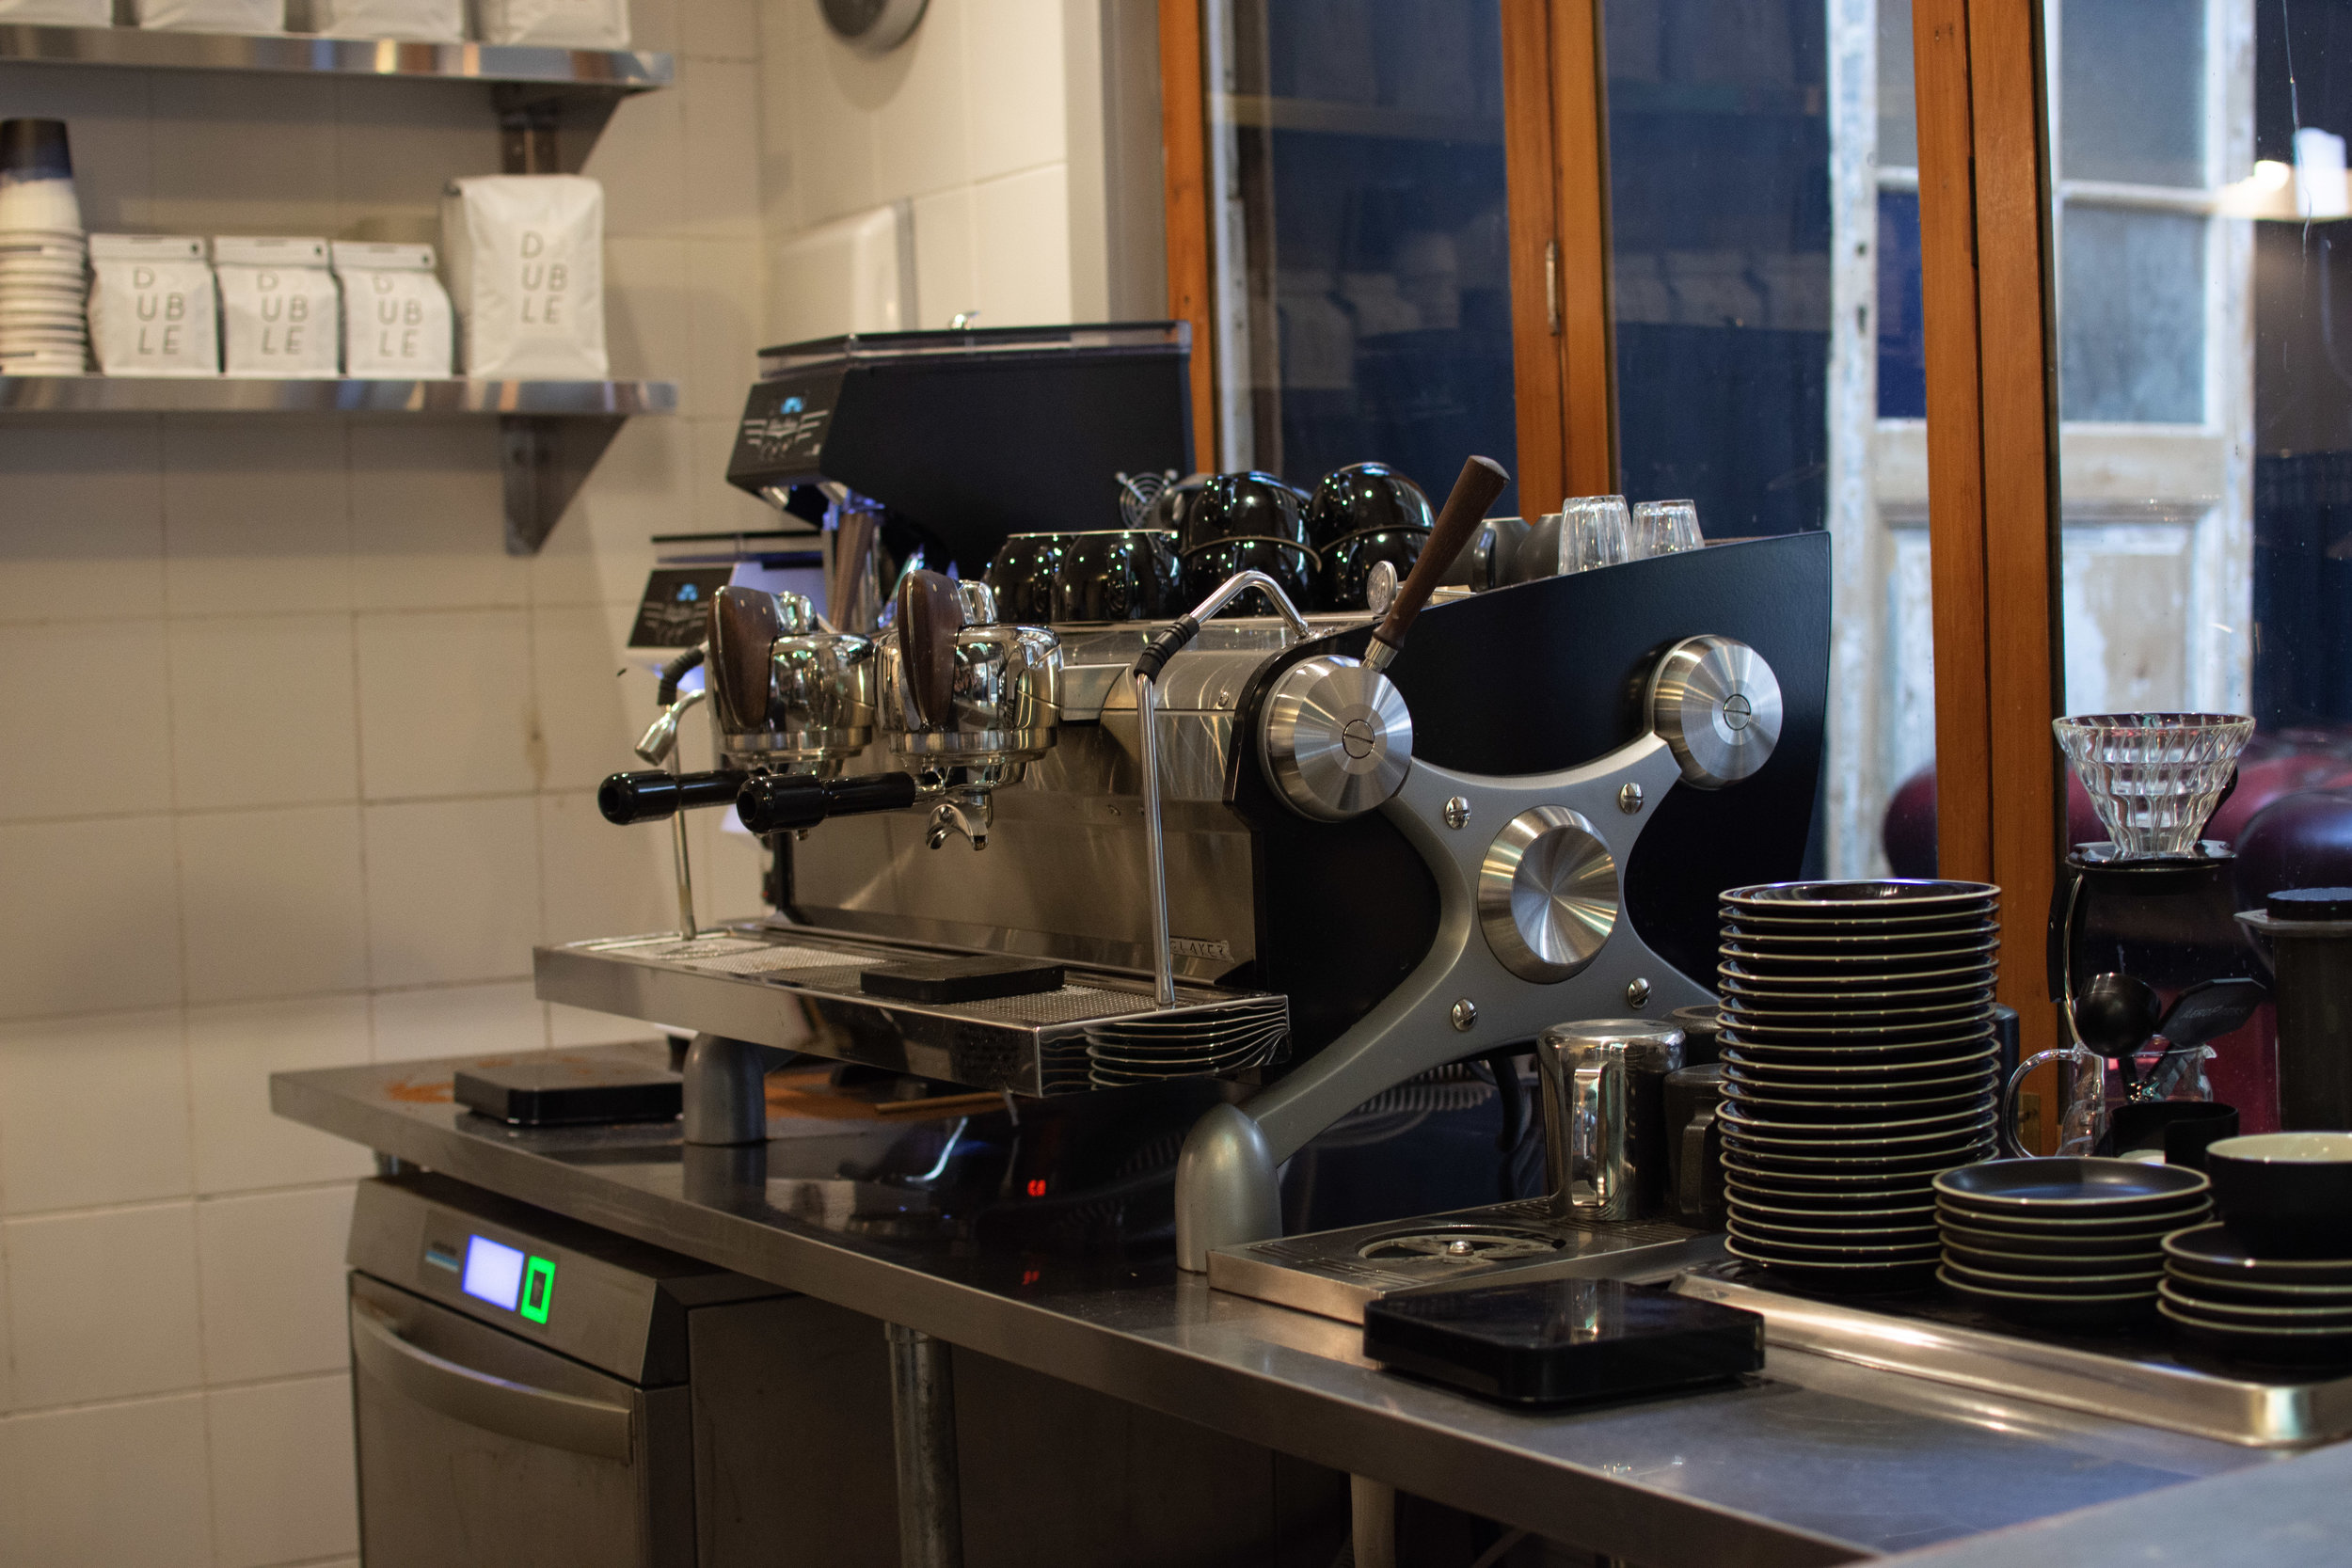 The Slayer Coffee Machine is the creme de la creme of coffee machines & help deliver every cup of excellence!